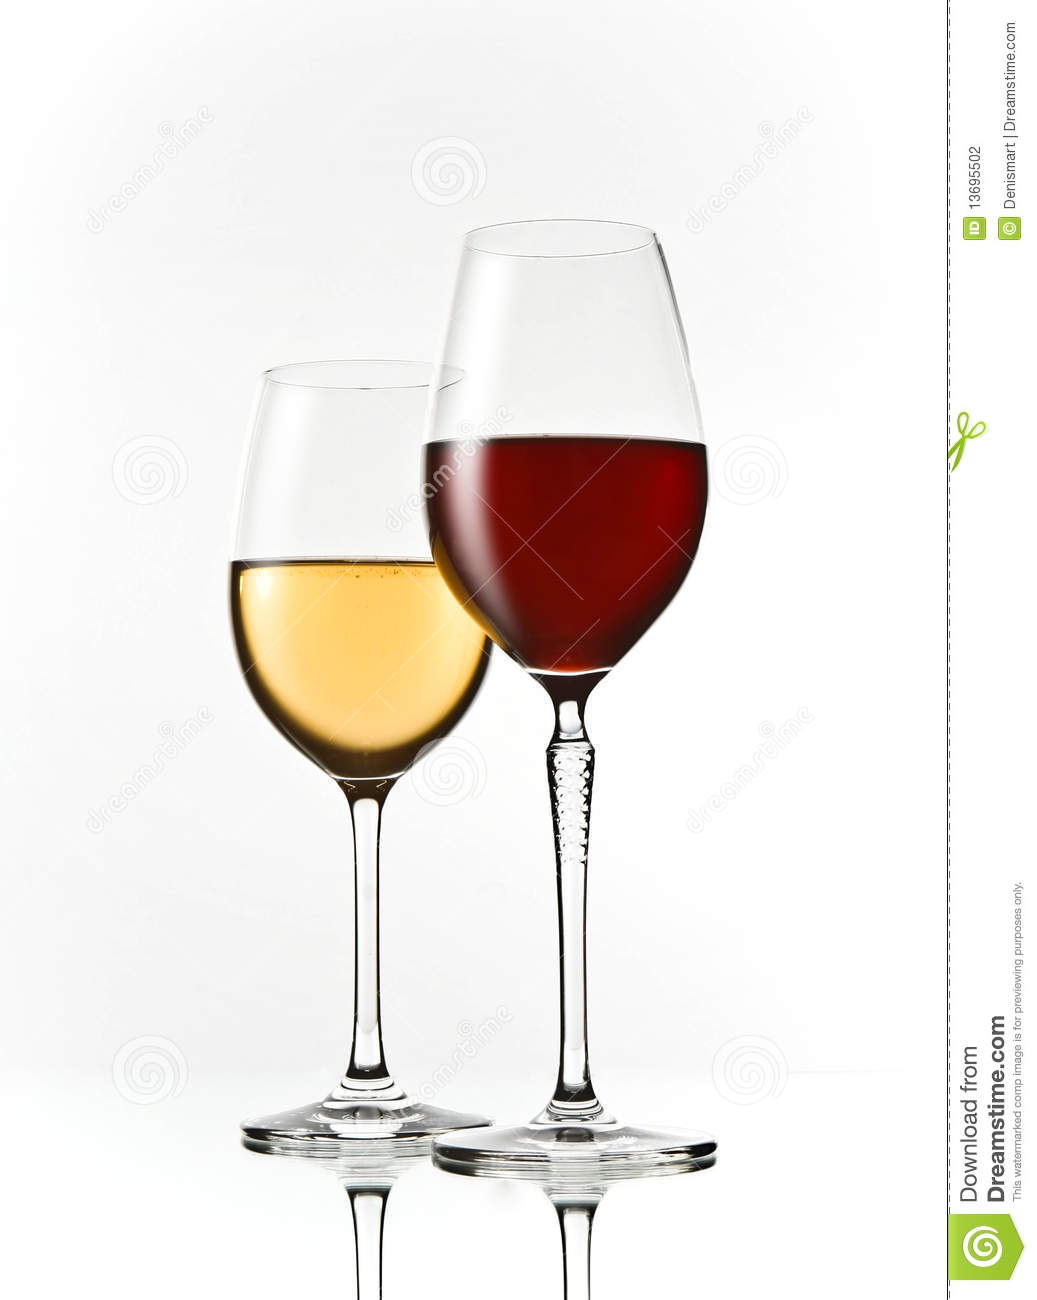 Red And White Wine Glasses Stock Photography - Image: 13695502